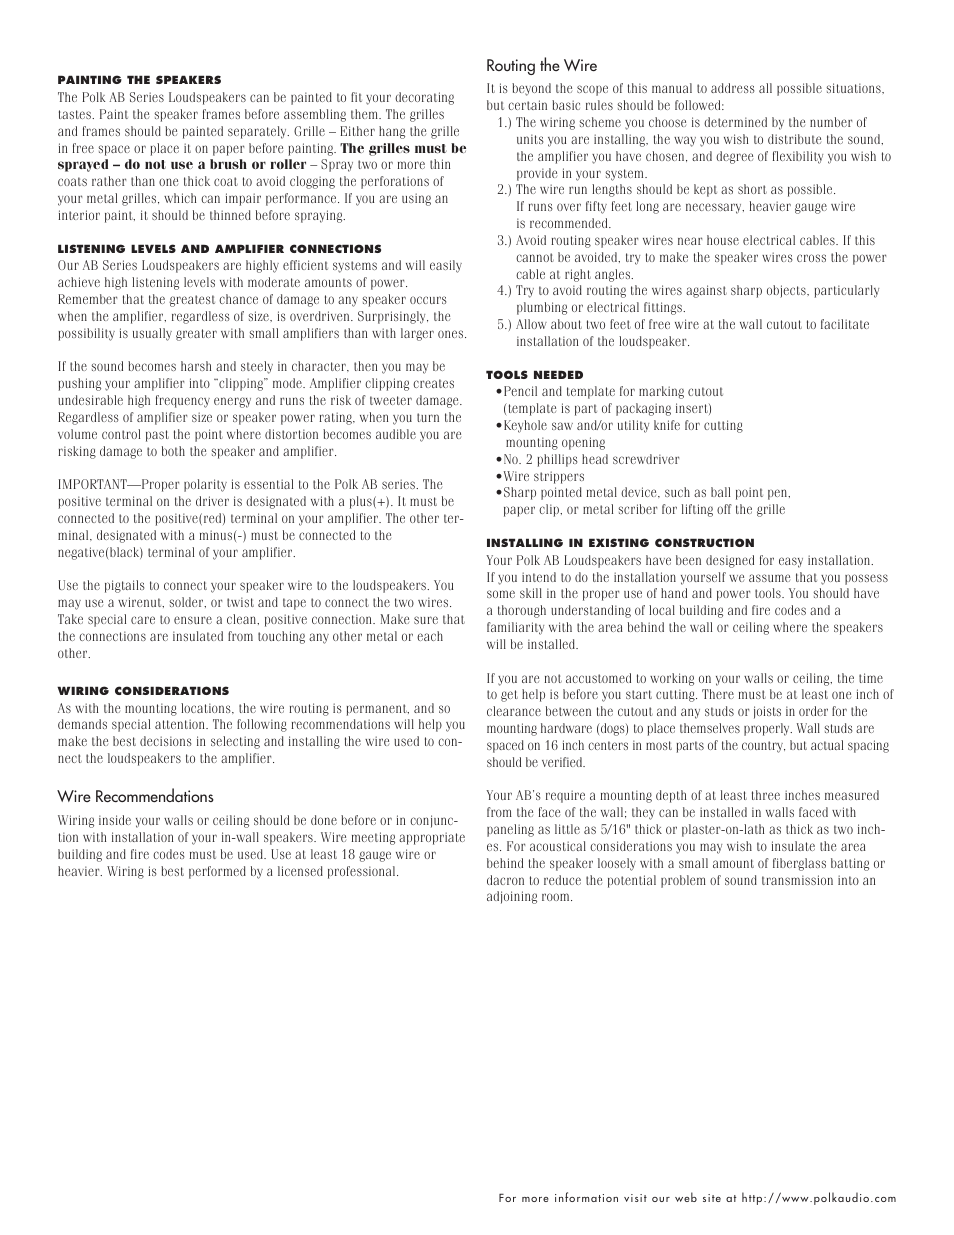 Polk Audio AB710 User Manual | Page 2 / 4 | Also for: AB510